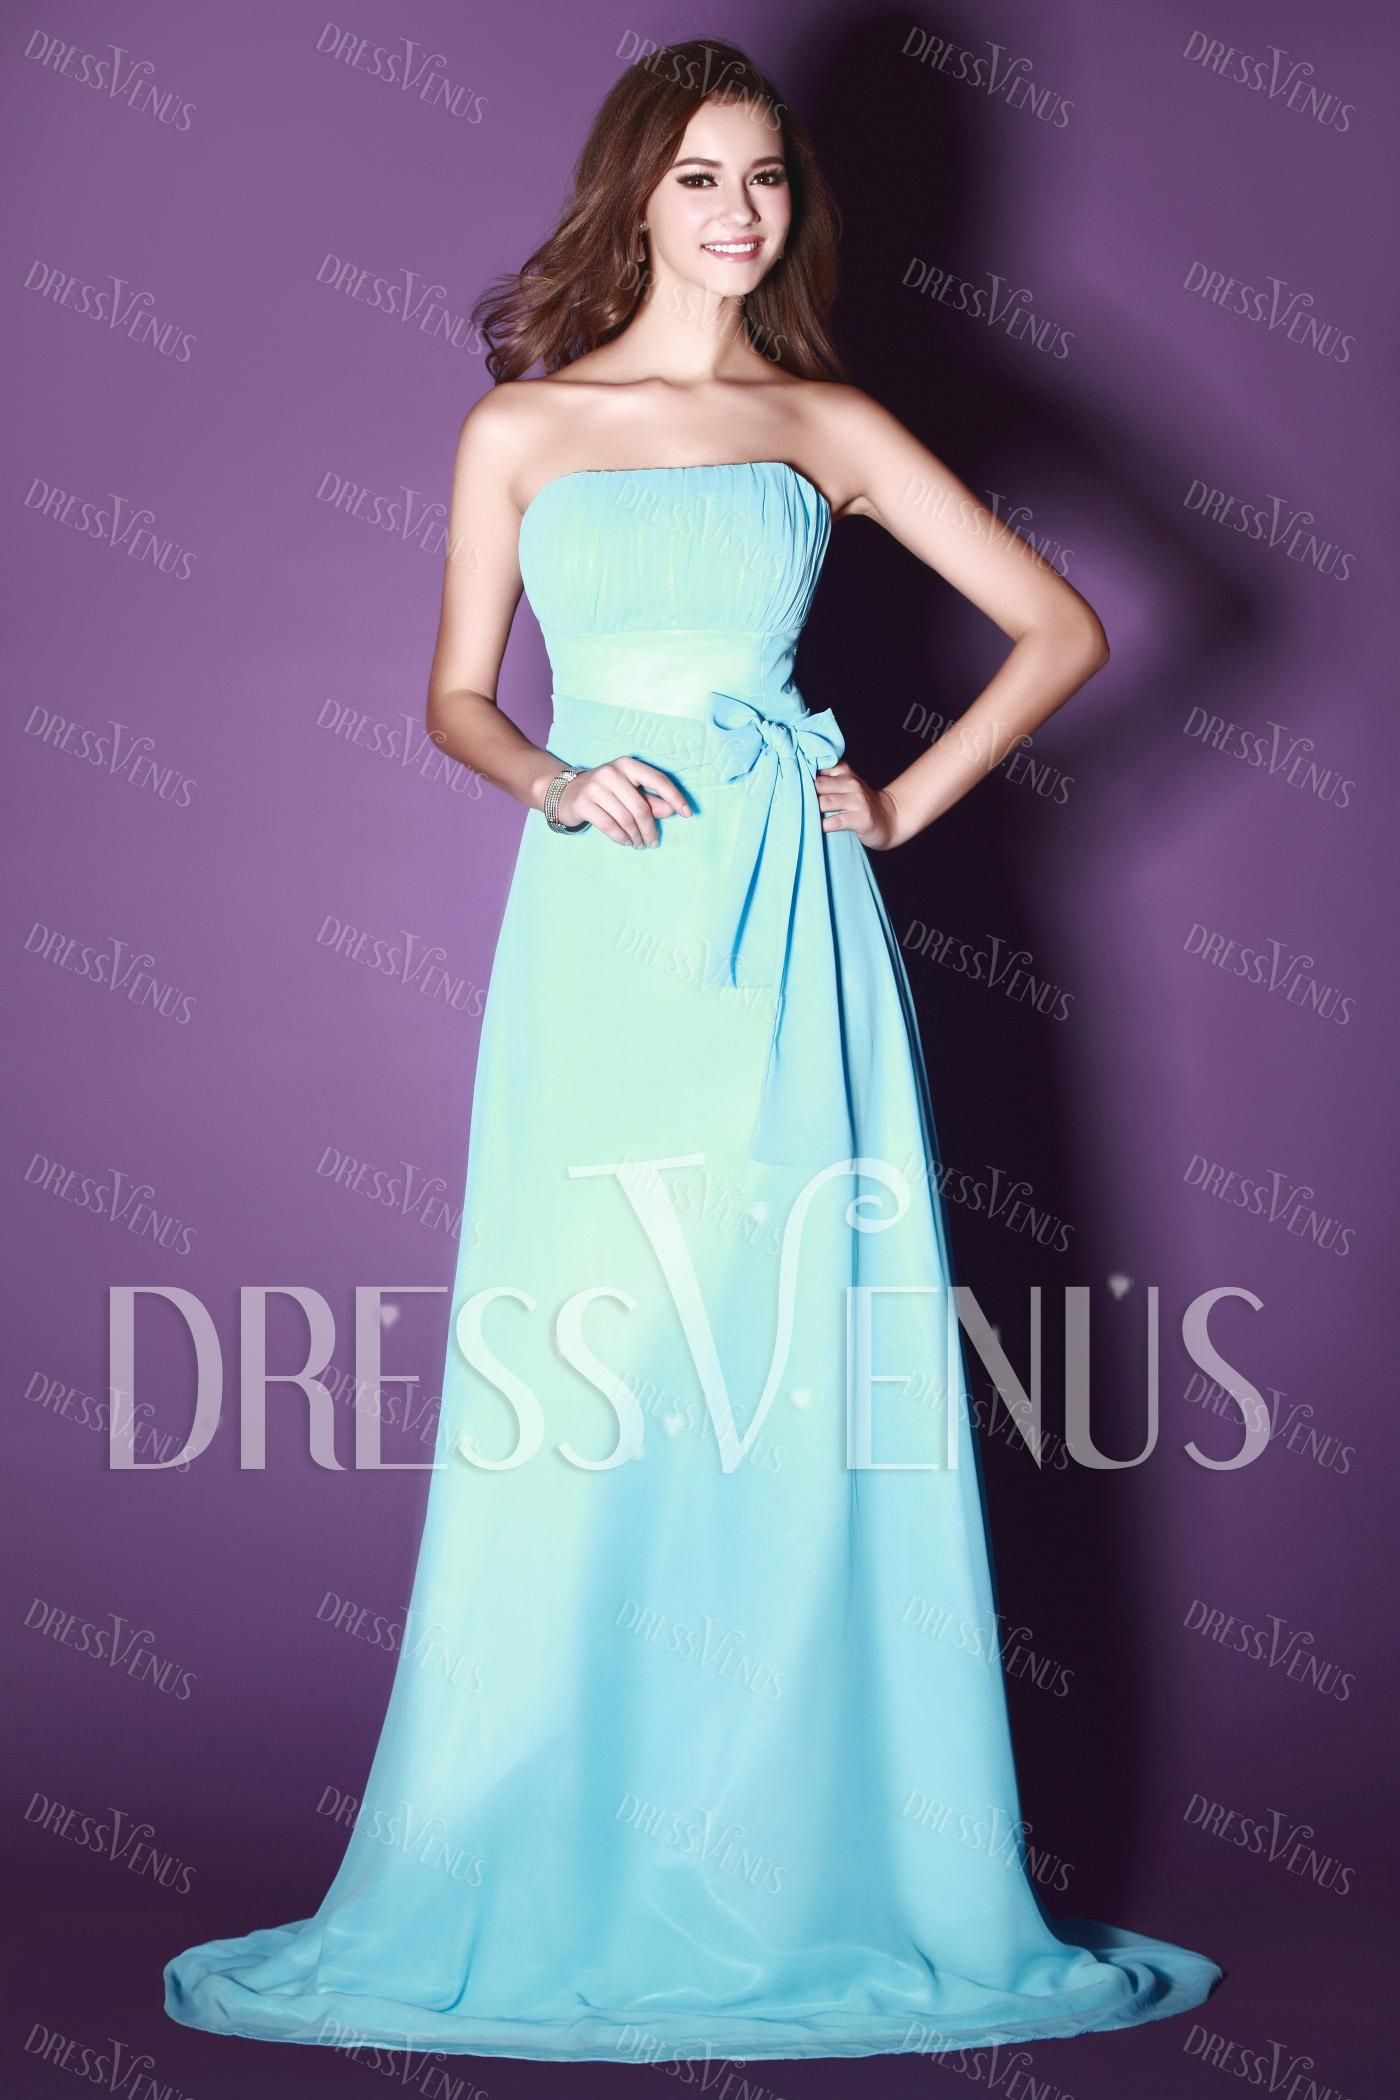 New style sashesribbons pleats strapless a line floor length new style sashesribbons pleats strapless a line floor length sandras bridesmaid dress ombrellifo Image collections